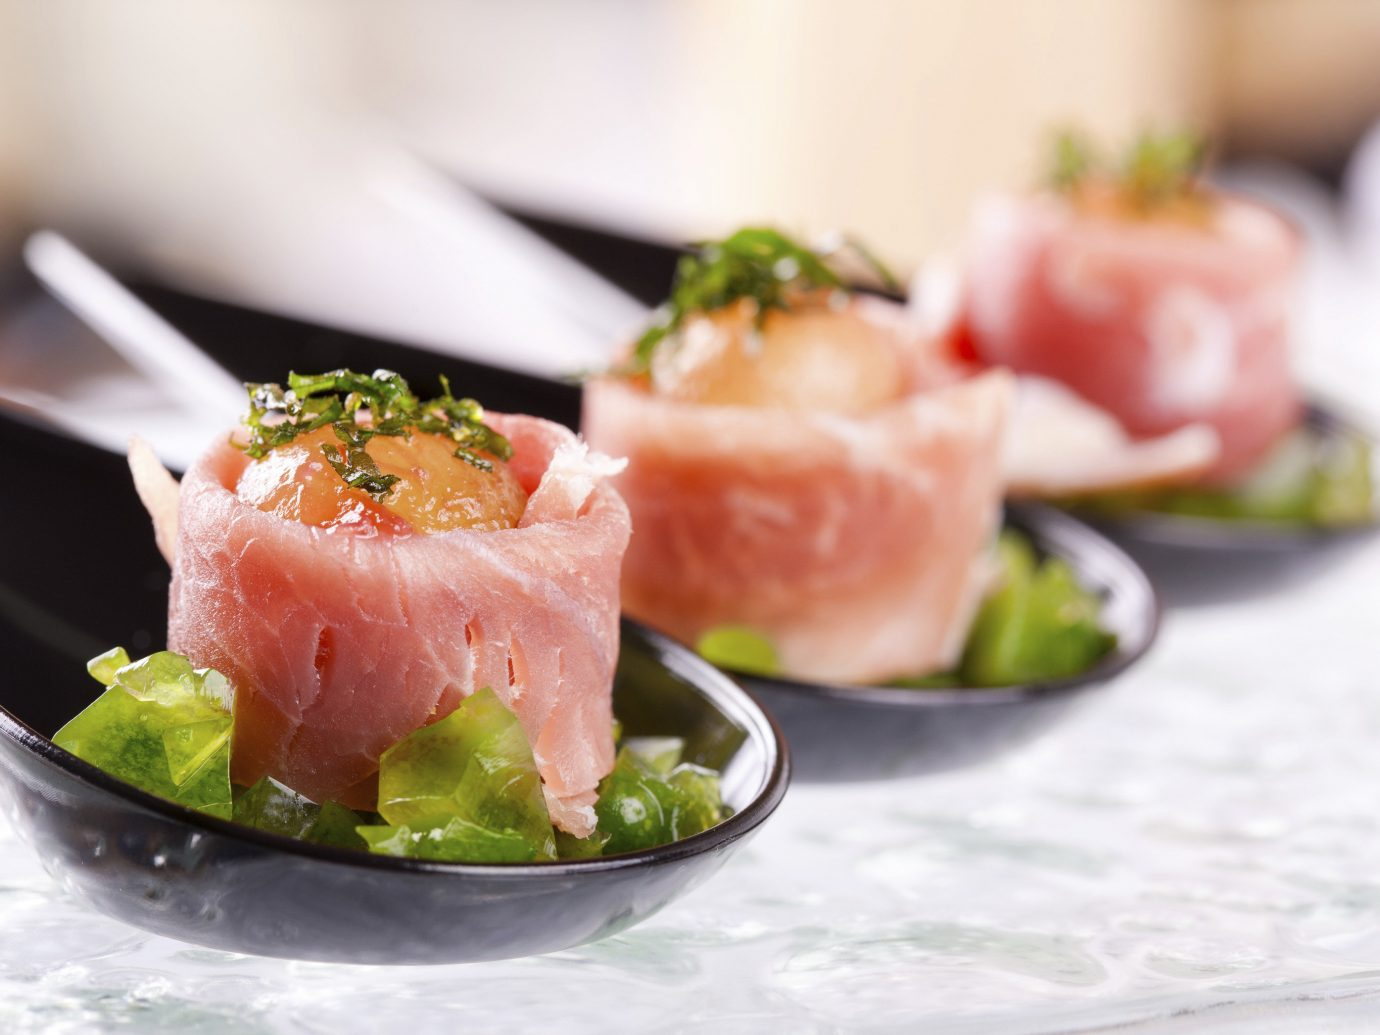 Food + Drink food dish plate cuisine smoked salmon hors d oeuvre asian food sushi fish produce sashimi meal ceviche